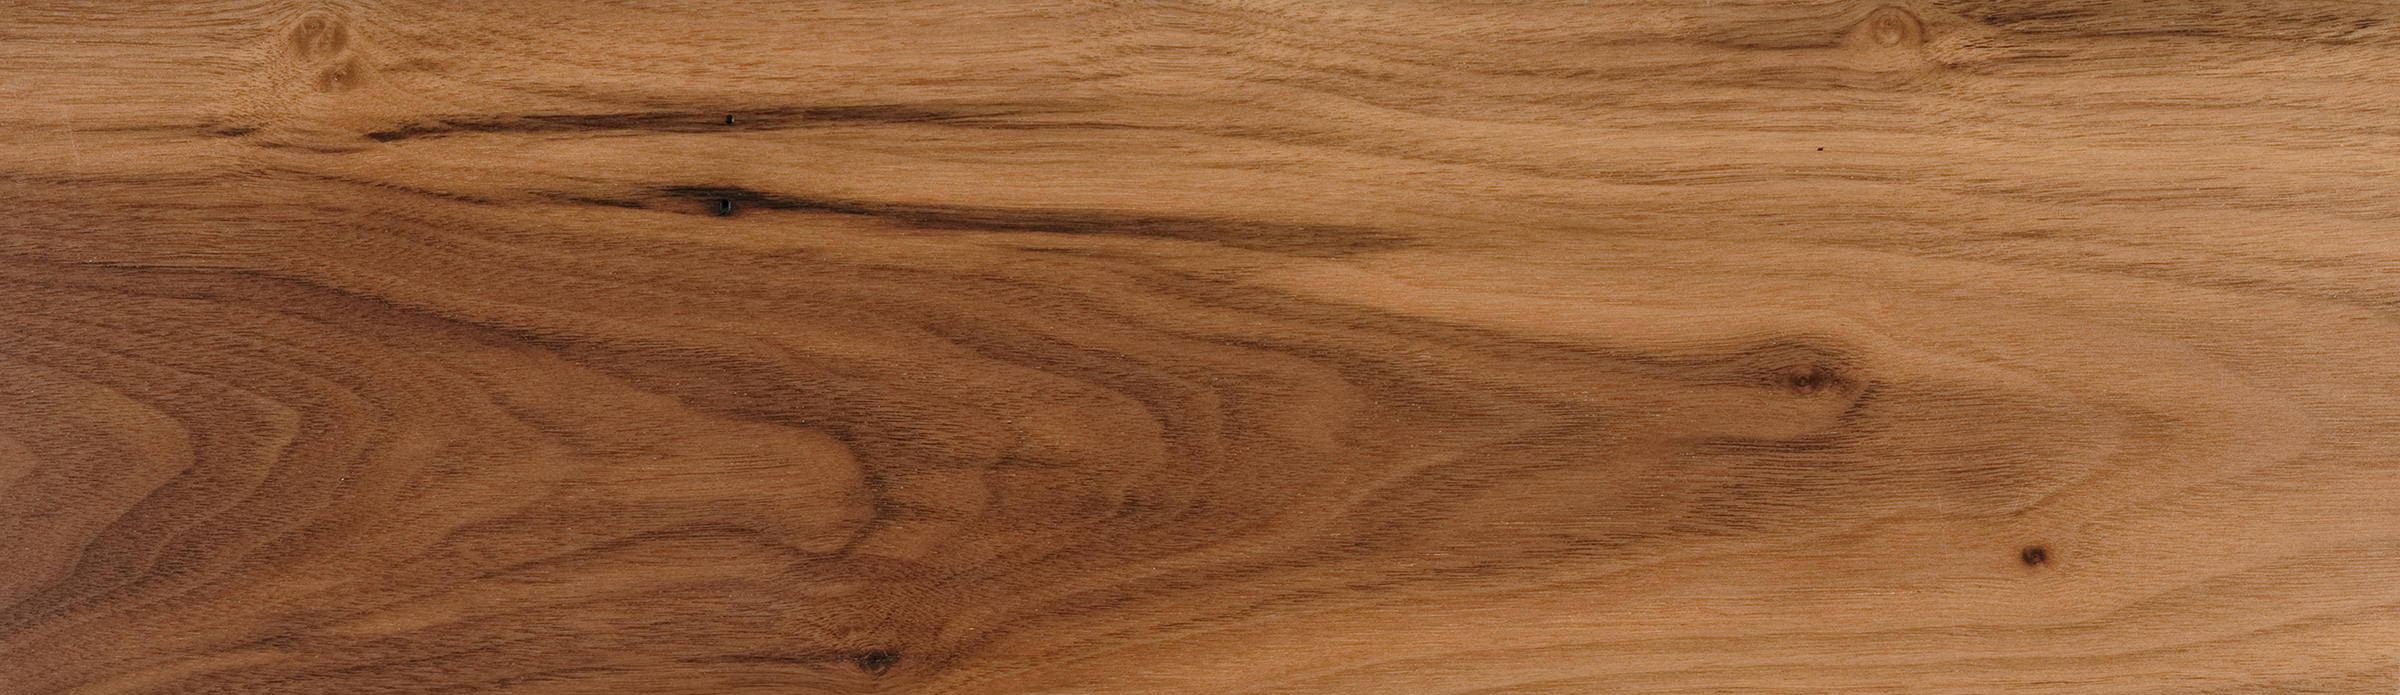 A favourite amongst craftsmen, American Walnut has a rich chocolate brown colouring that sometimes throws a streak of deep purplish brown. The grain is generally straight, occasionally displaying a curly or wavy pattern.